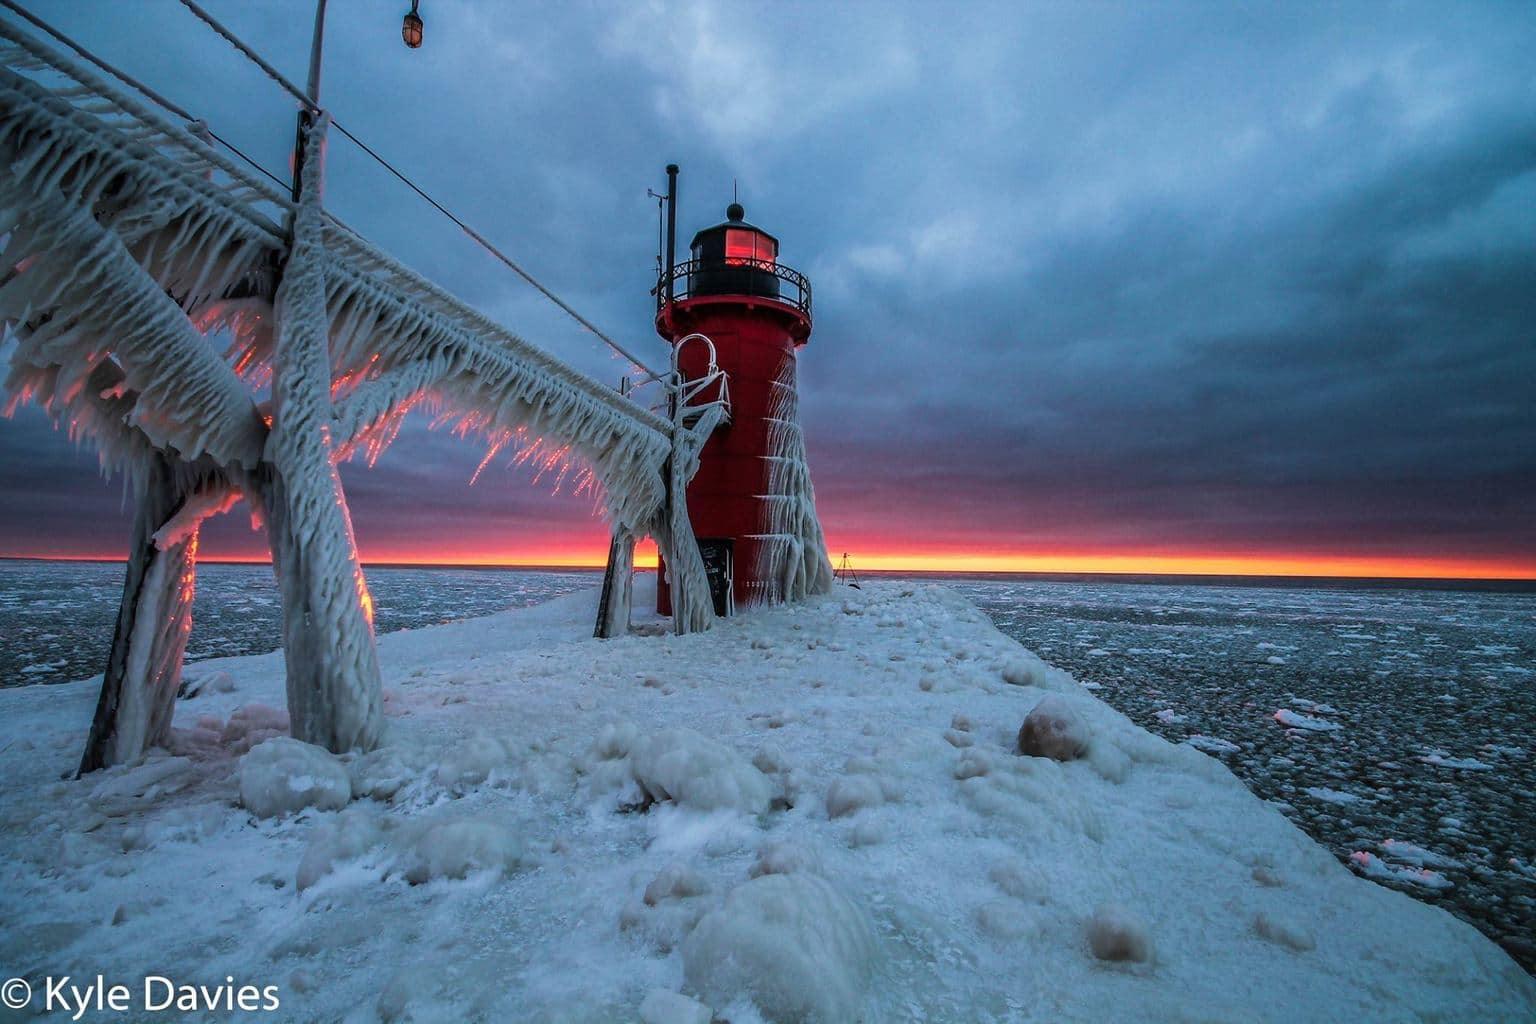 Lighthouse in Michigan encased in ice during sunset. Taken in January of 2013